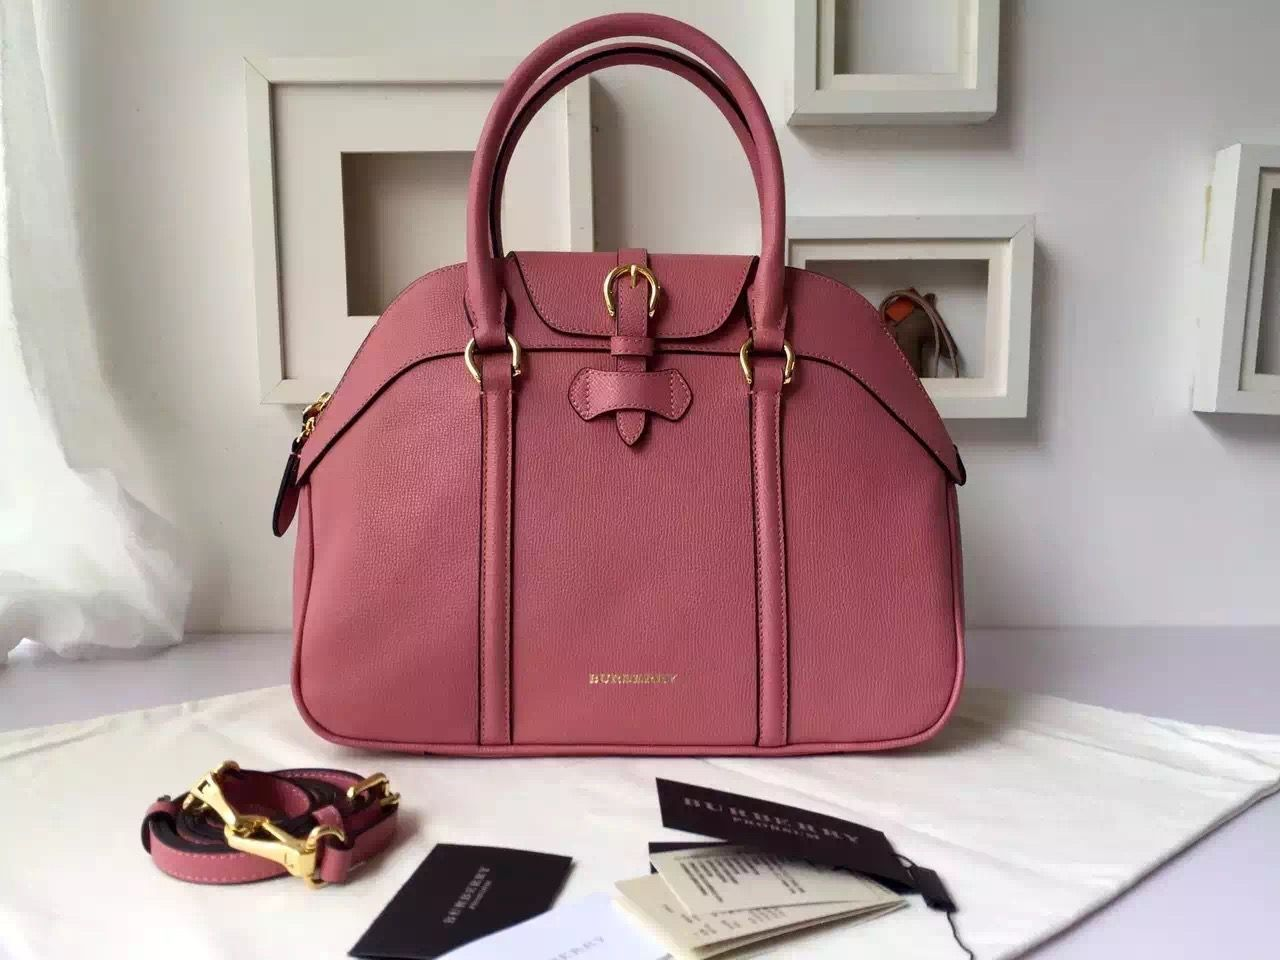 ed73a3bab15 Burberry Large Leather Bowling Bag Pink   Burberry Bowling Bags on ...